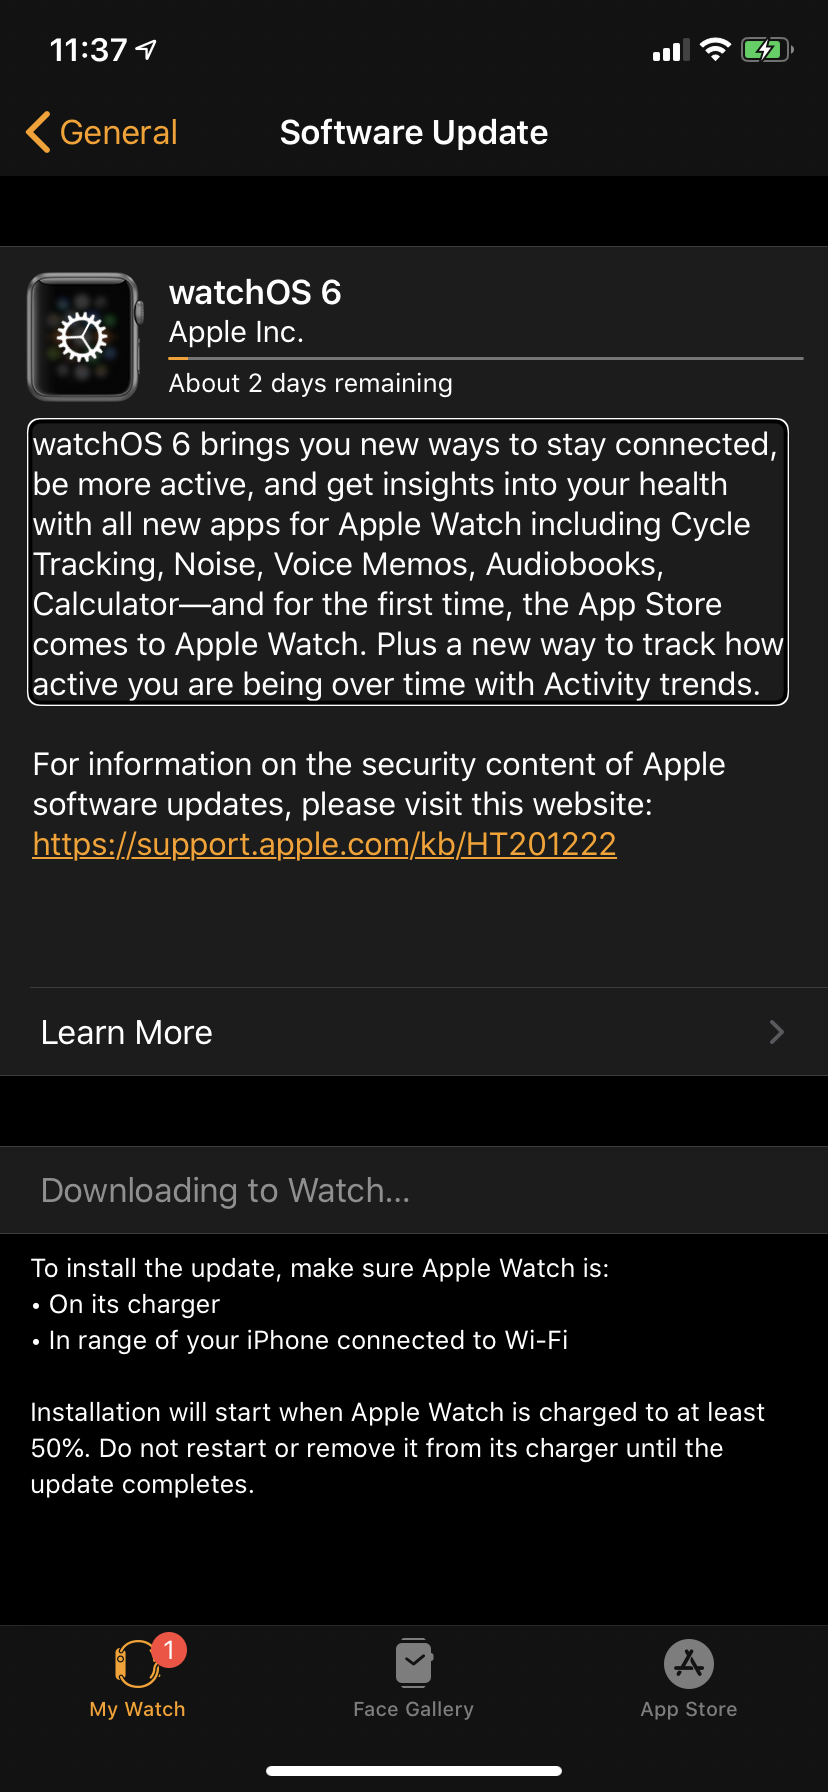 screen shot showing text that says the update will begin when the watch is plugged in and at least 50 percent charged. A progress bar shown at the top counts the progress of the update, in this example 10 percent